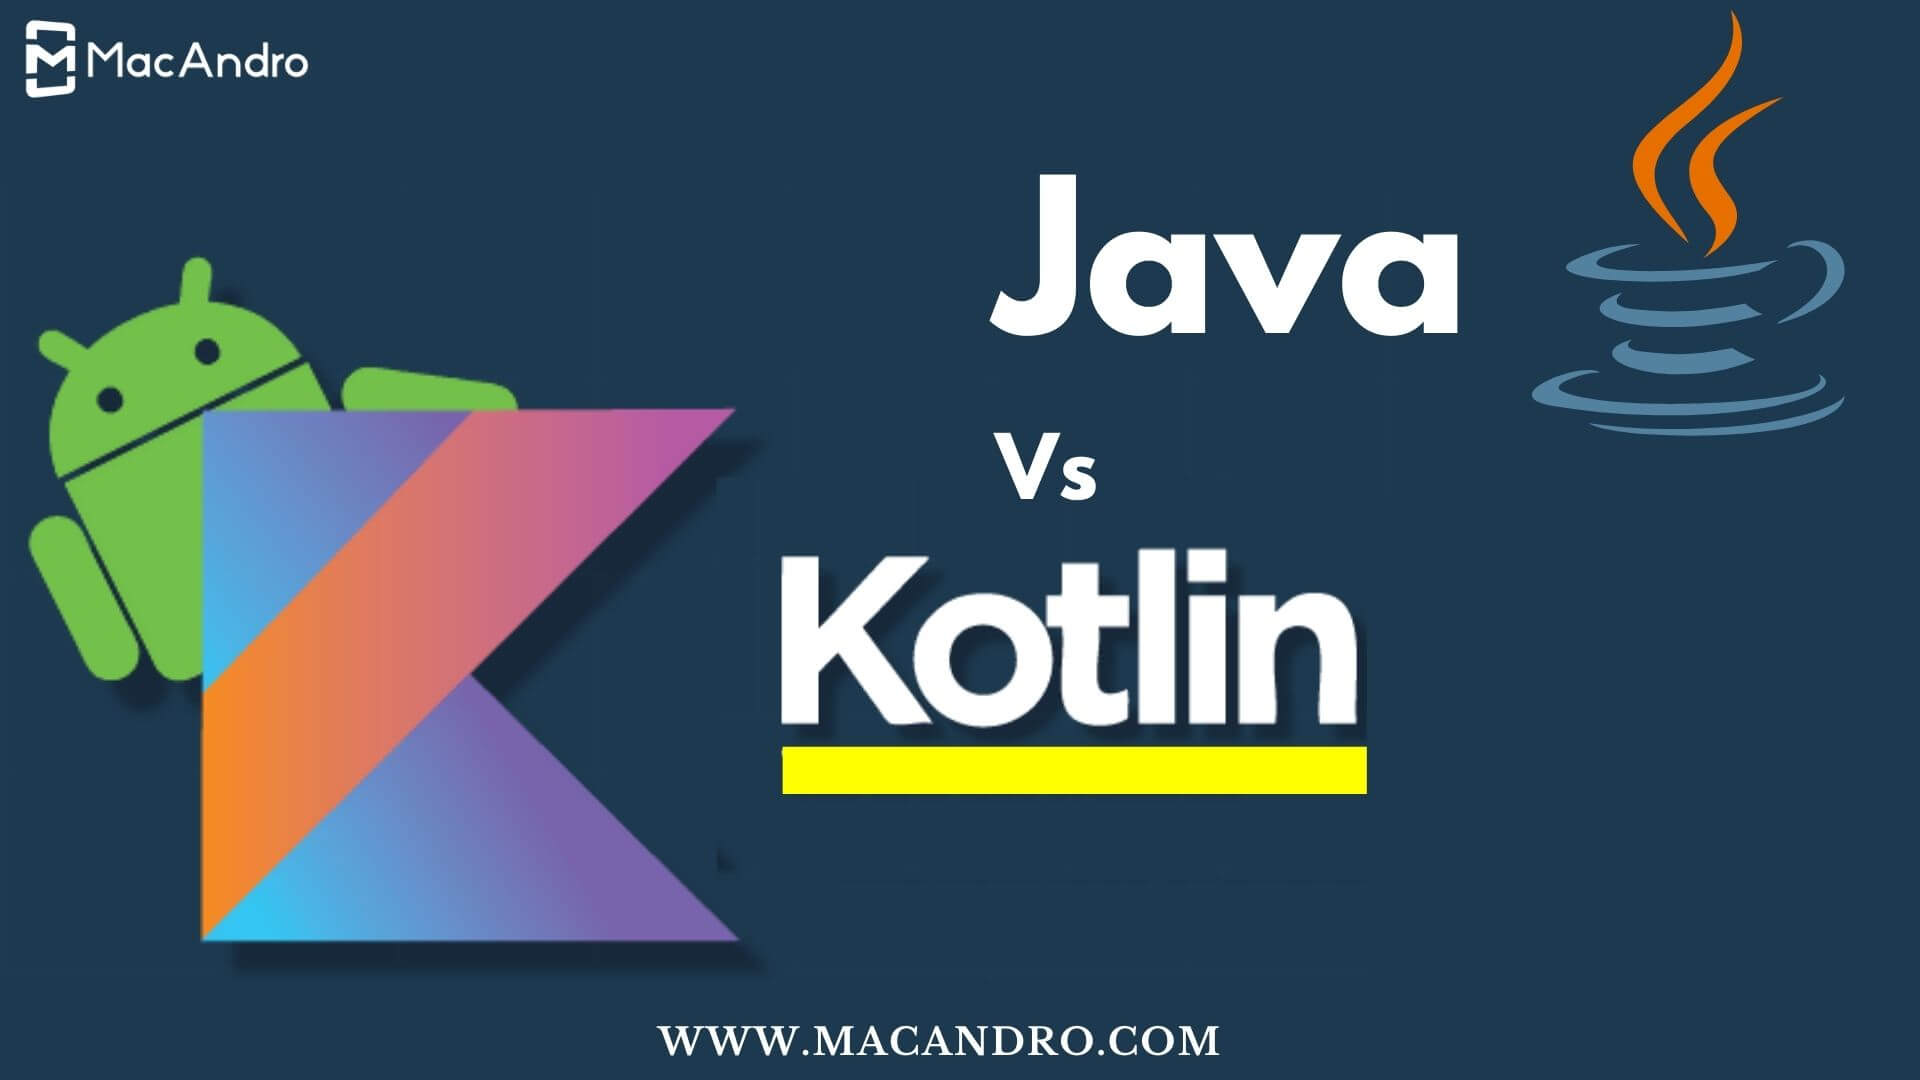 Java vs Kotlin - Which is Better for Android App Development in 2021?